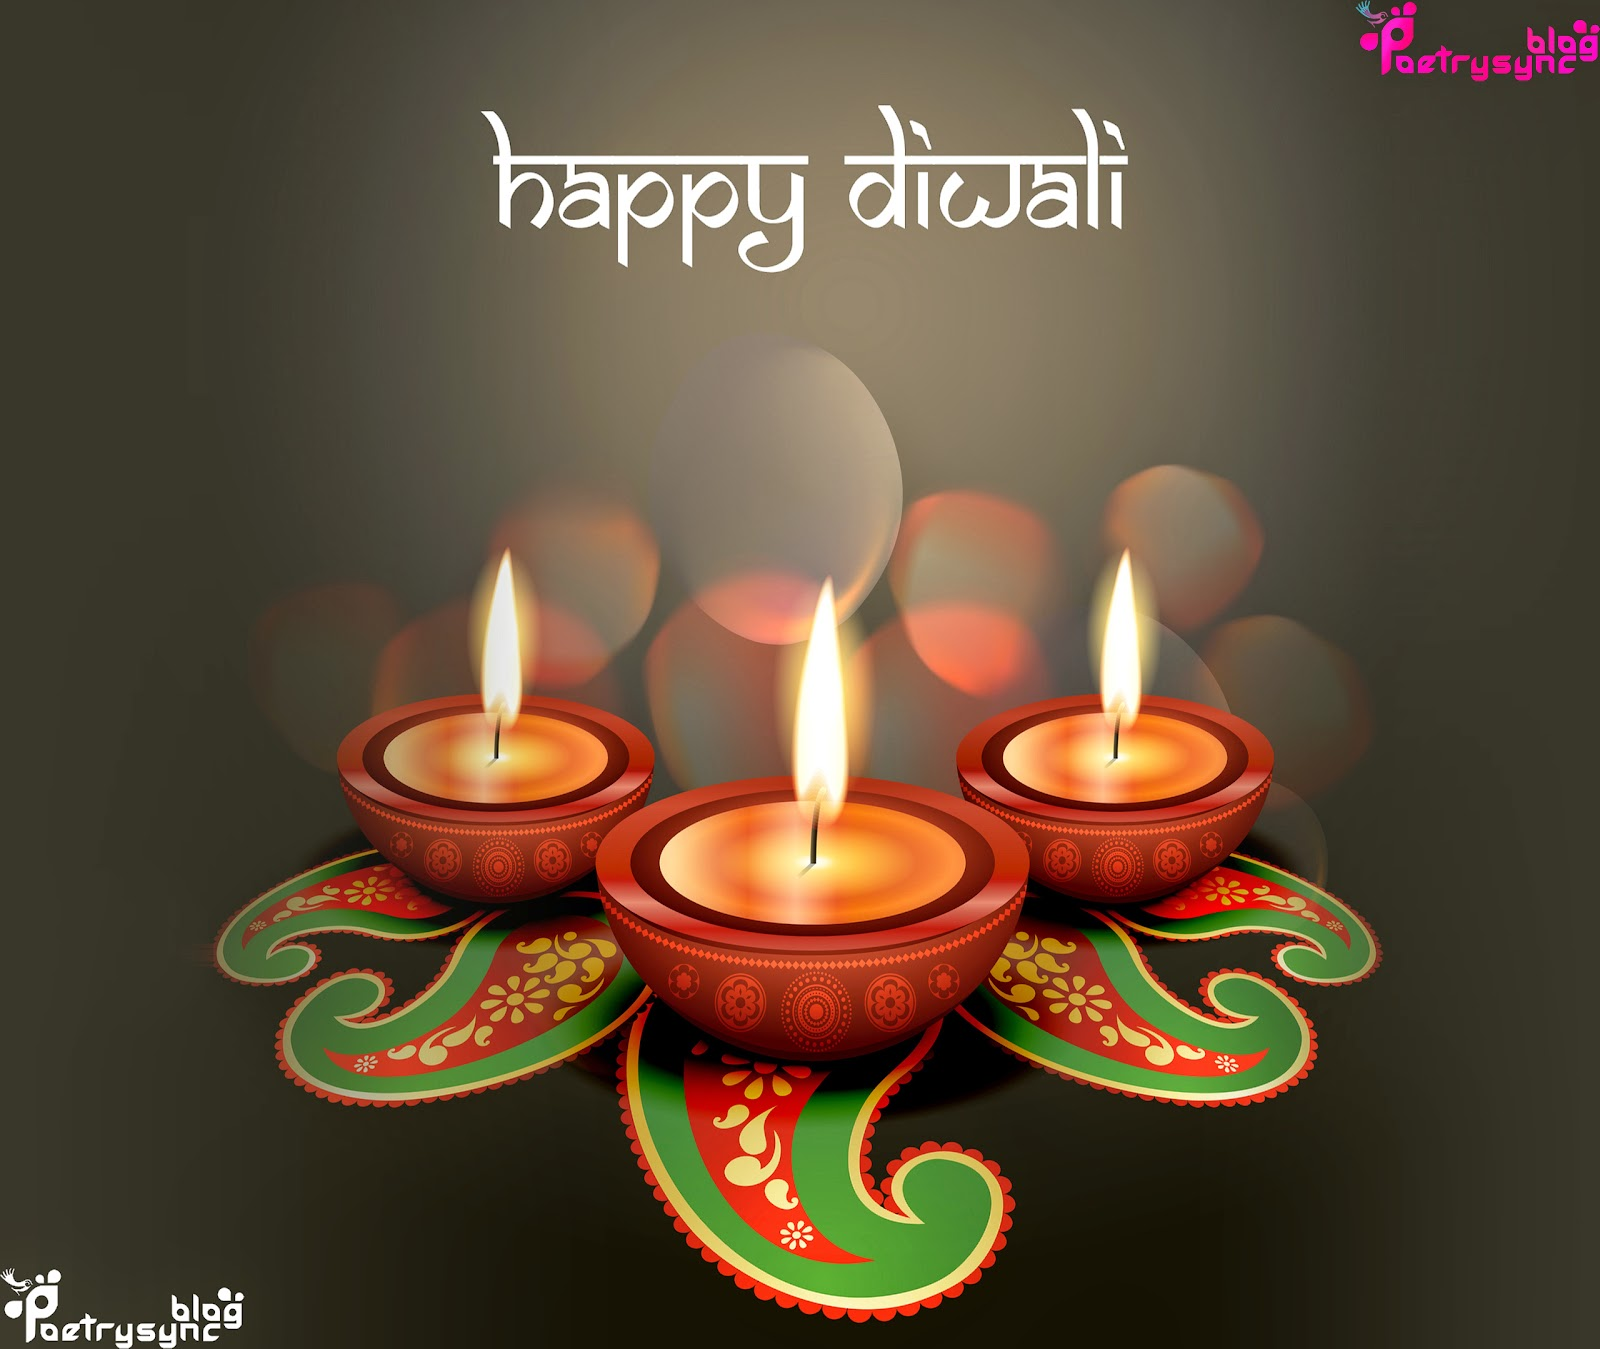 Happy Diwali Festival Wallpapers With Wishes Messages In